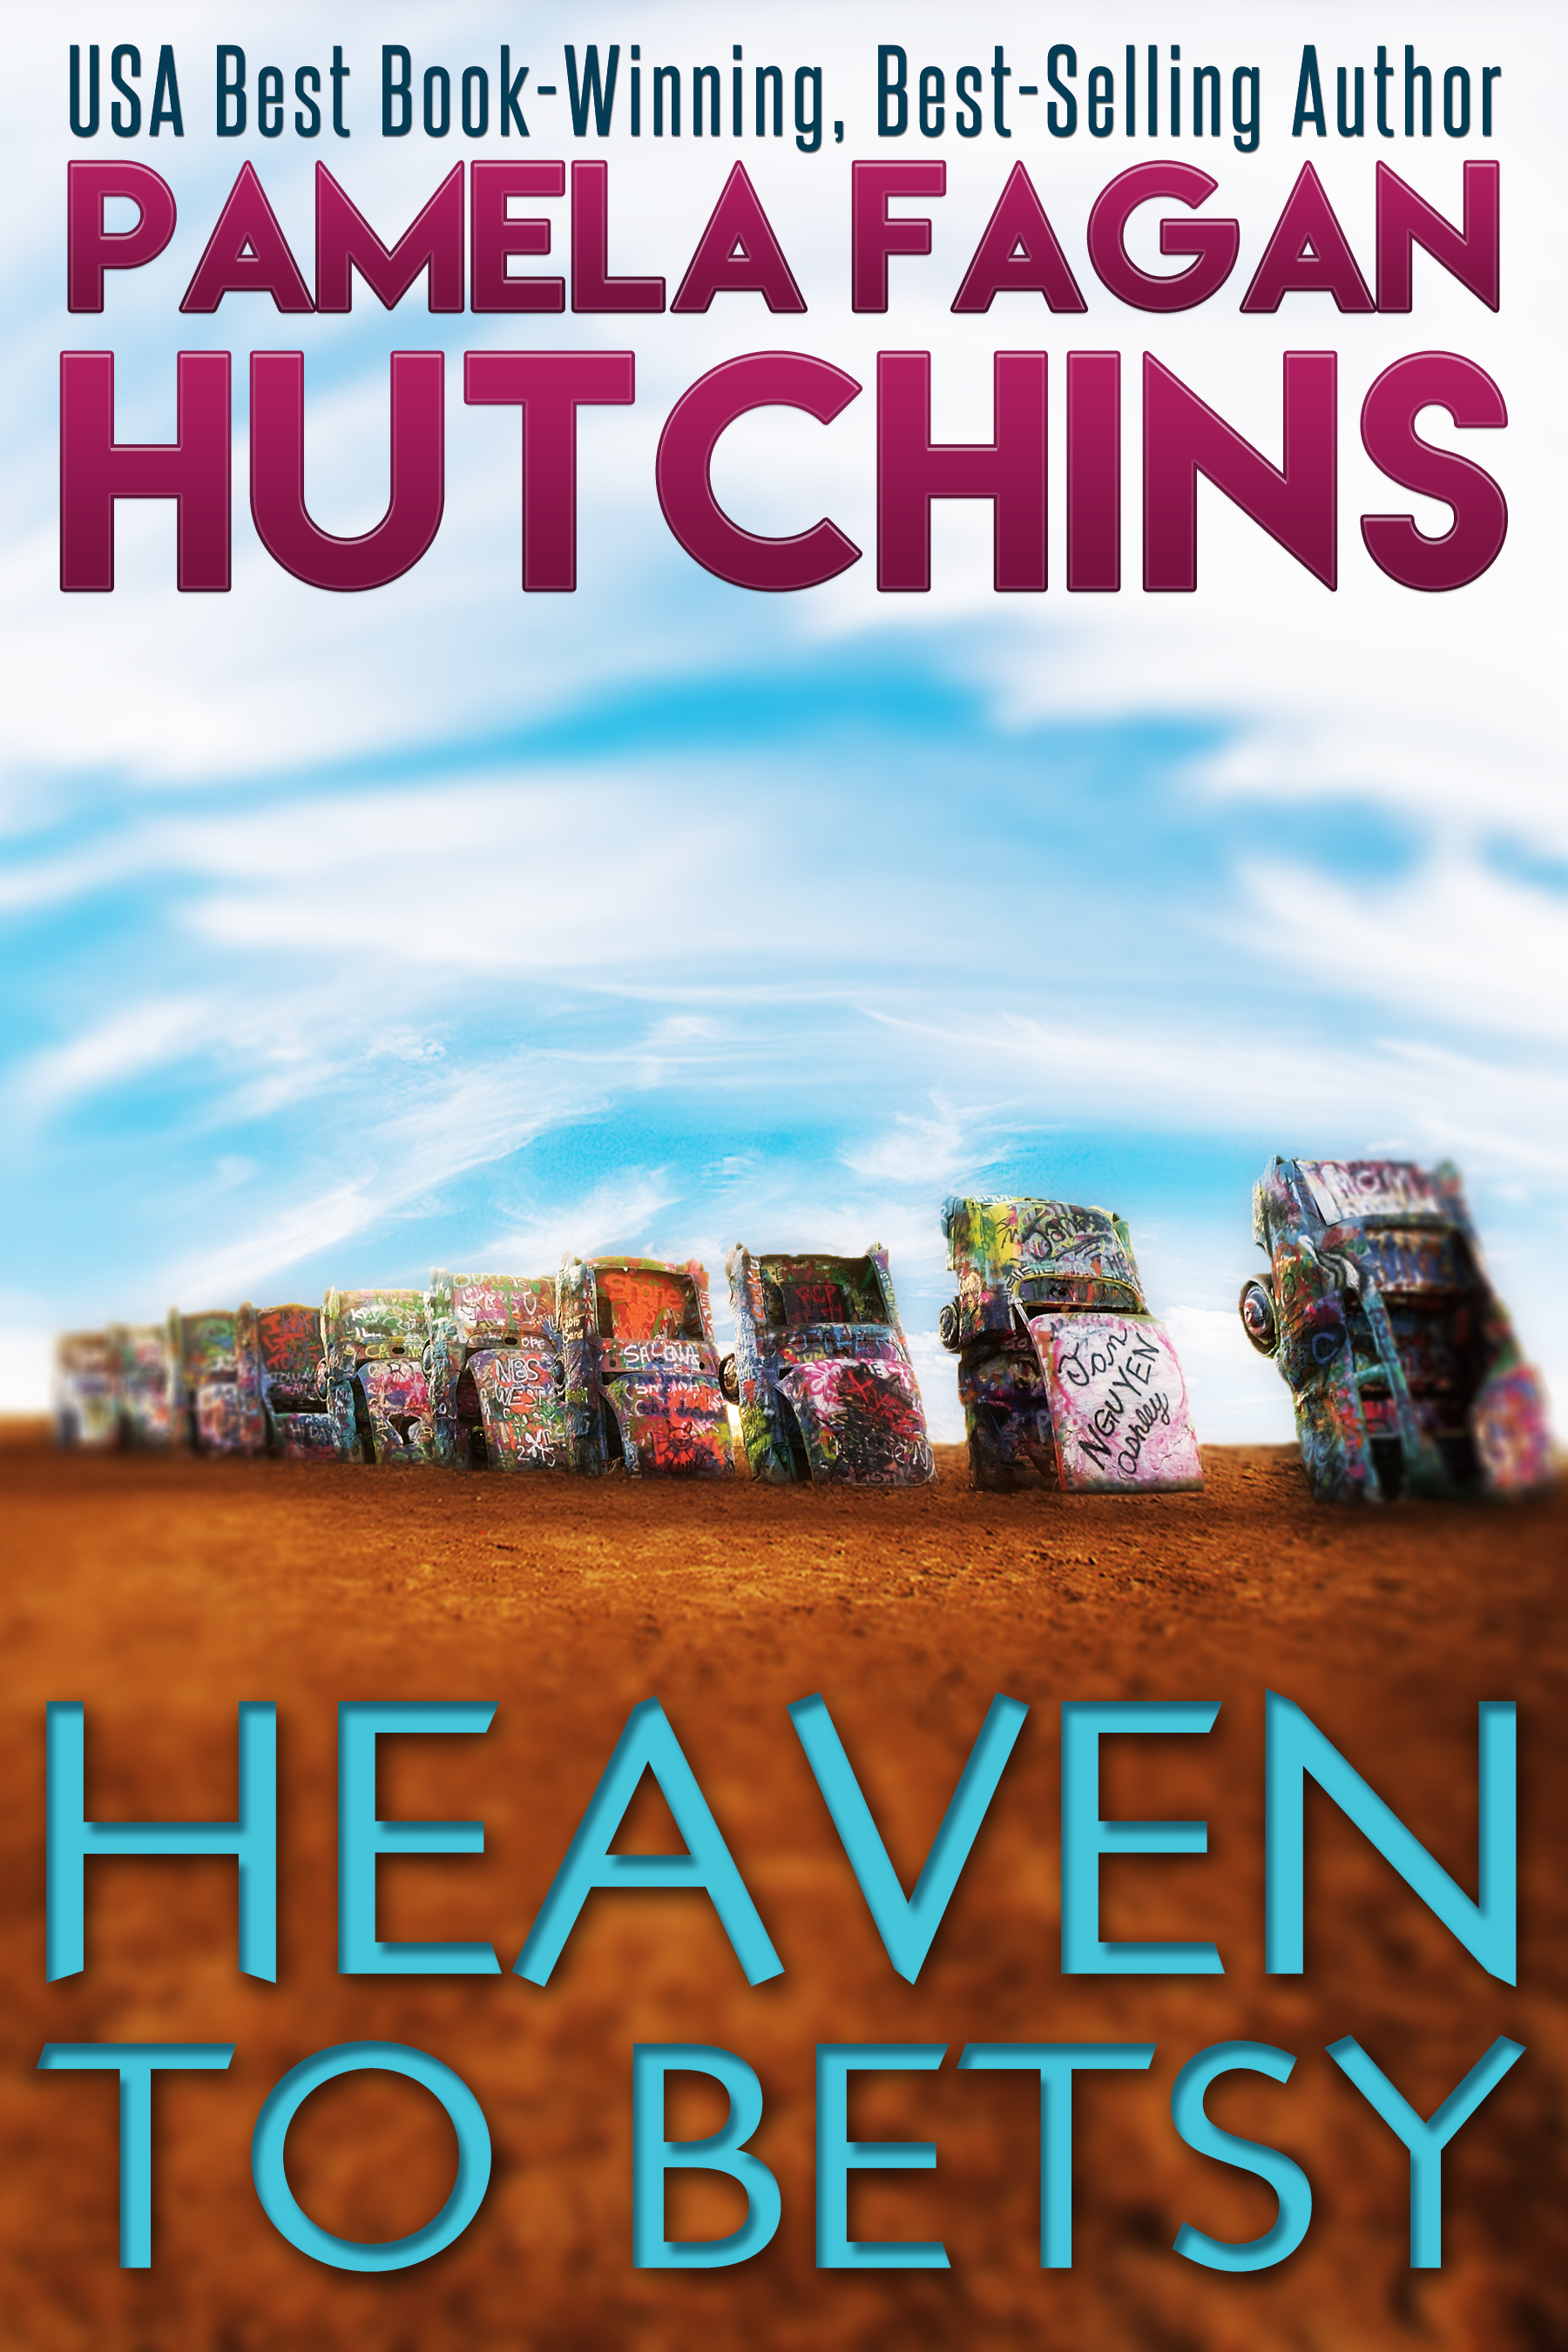 Pamela fagan hutchins what doesnt kill you mysteries page 8 heaven to betsy final ebook cover to celebrate the release of fandeluxe Choice Image